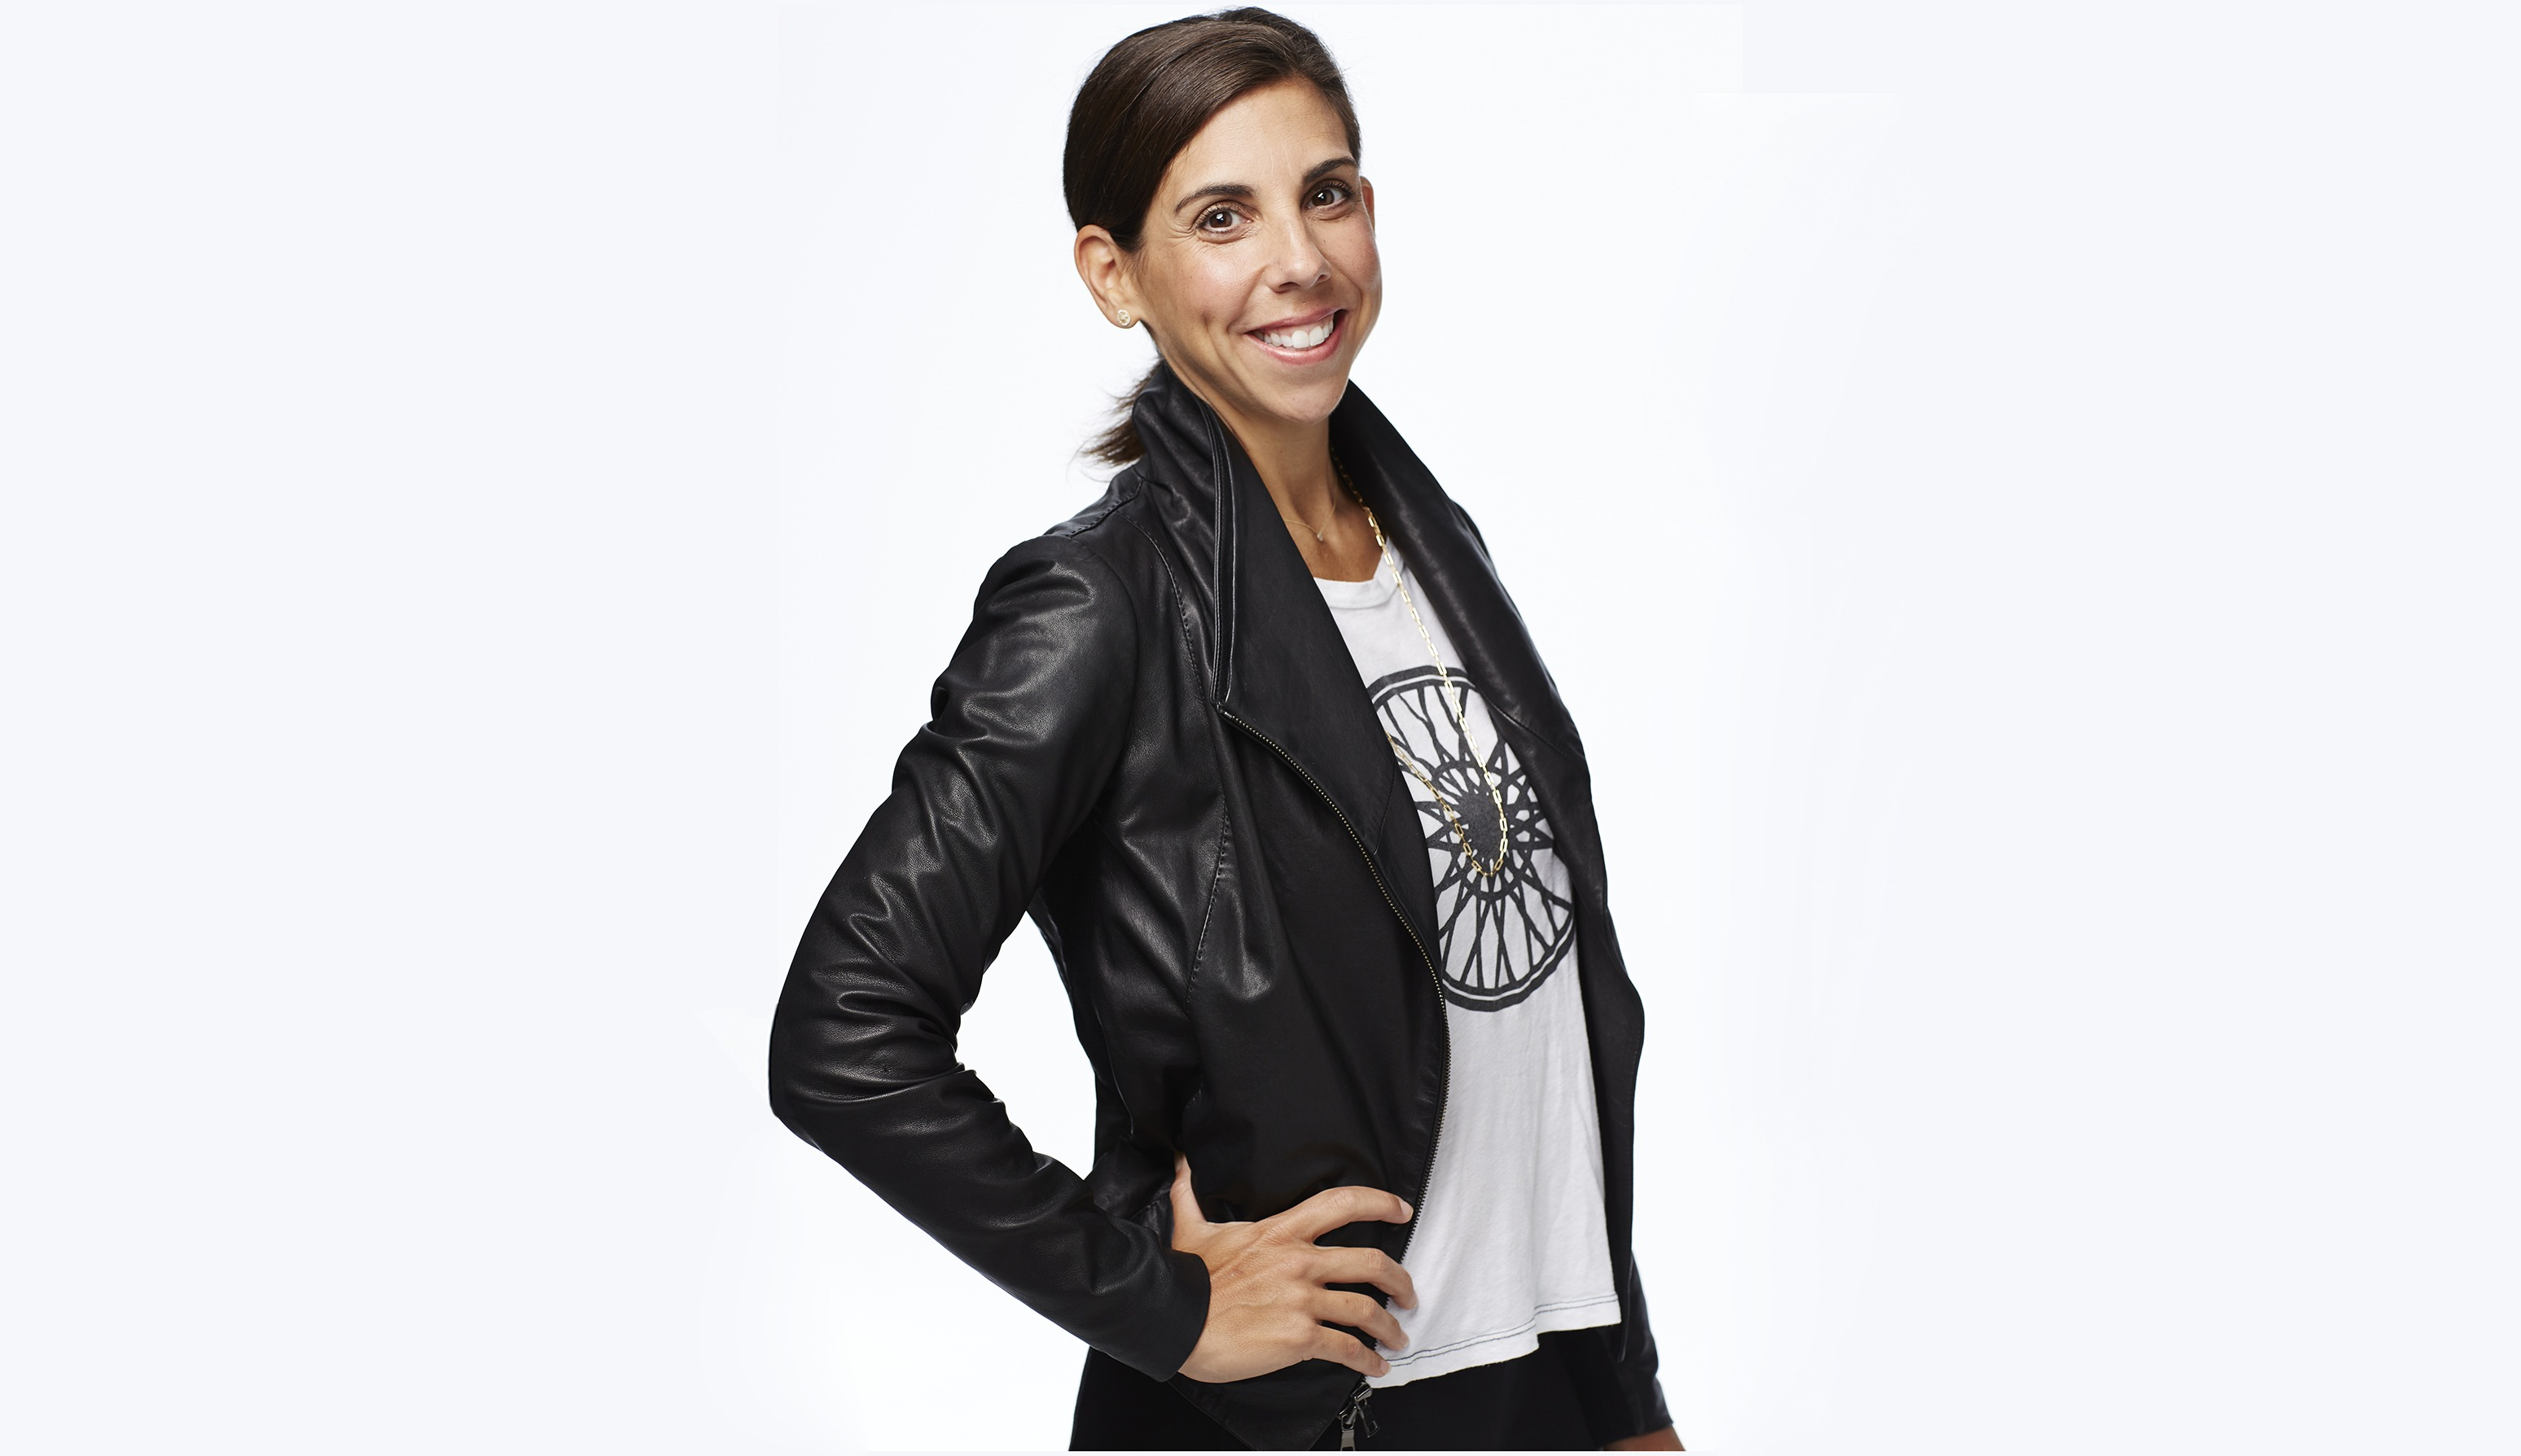 Melanie Whelan, the young CEO of SoulCycle, is steering the company towards its impending IPO.